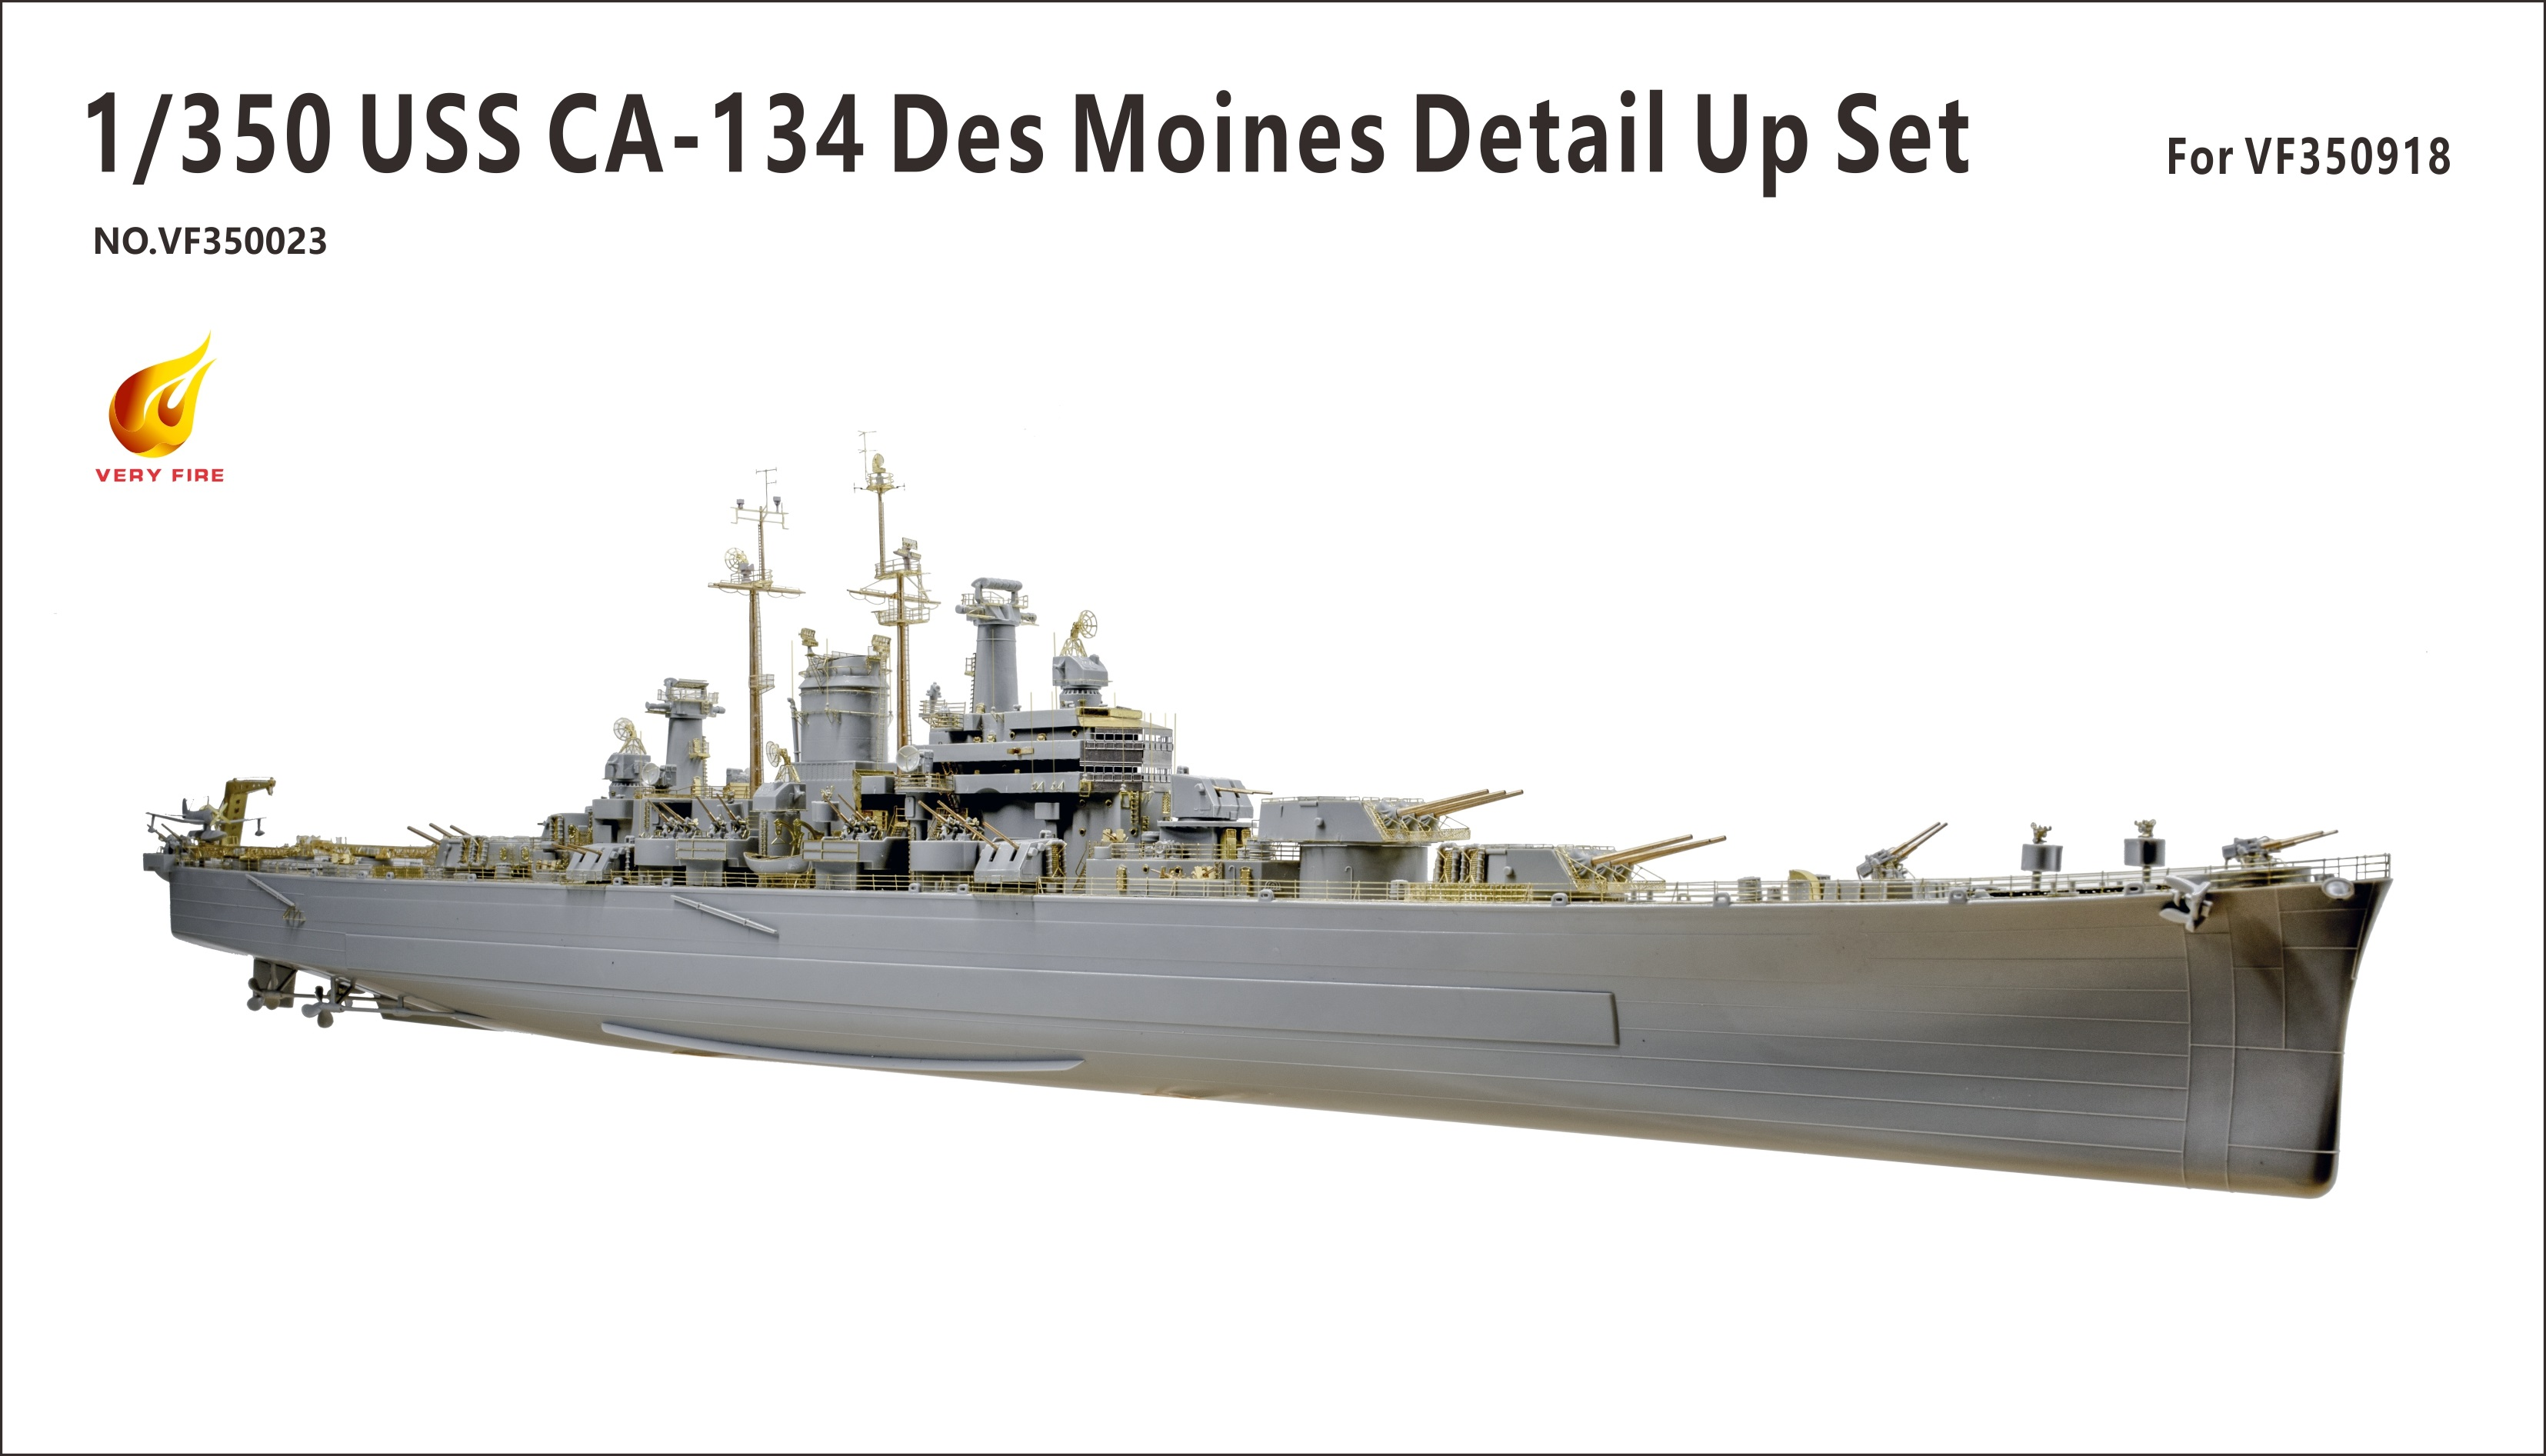 Very Fire 1/350 USS CA-134 Des Moines Detail Up Set (For Very Fire)